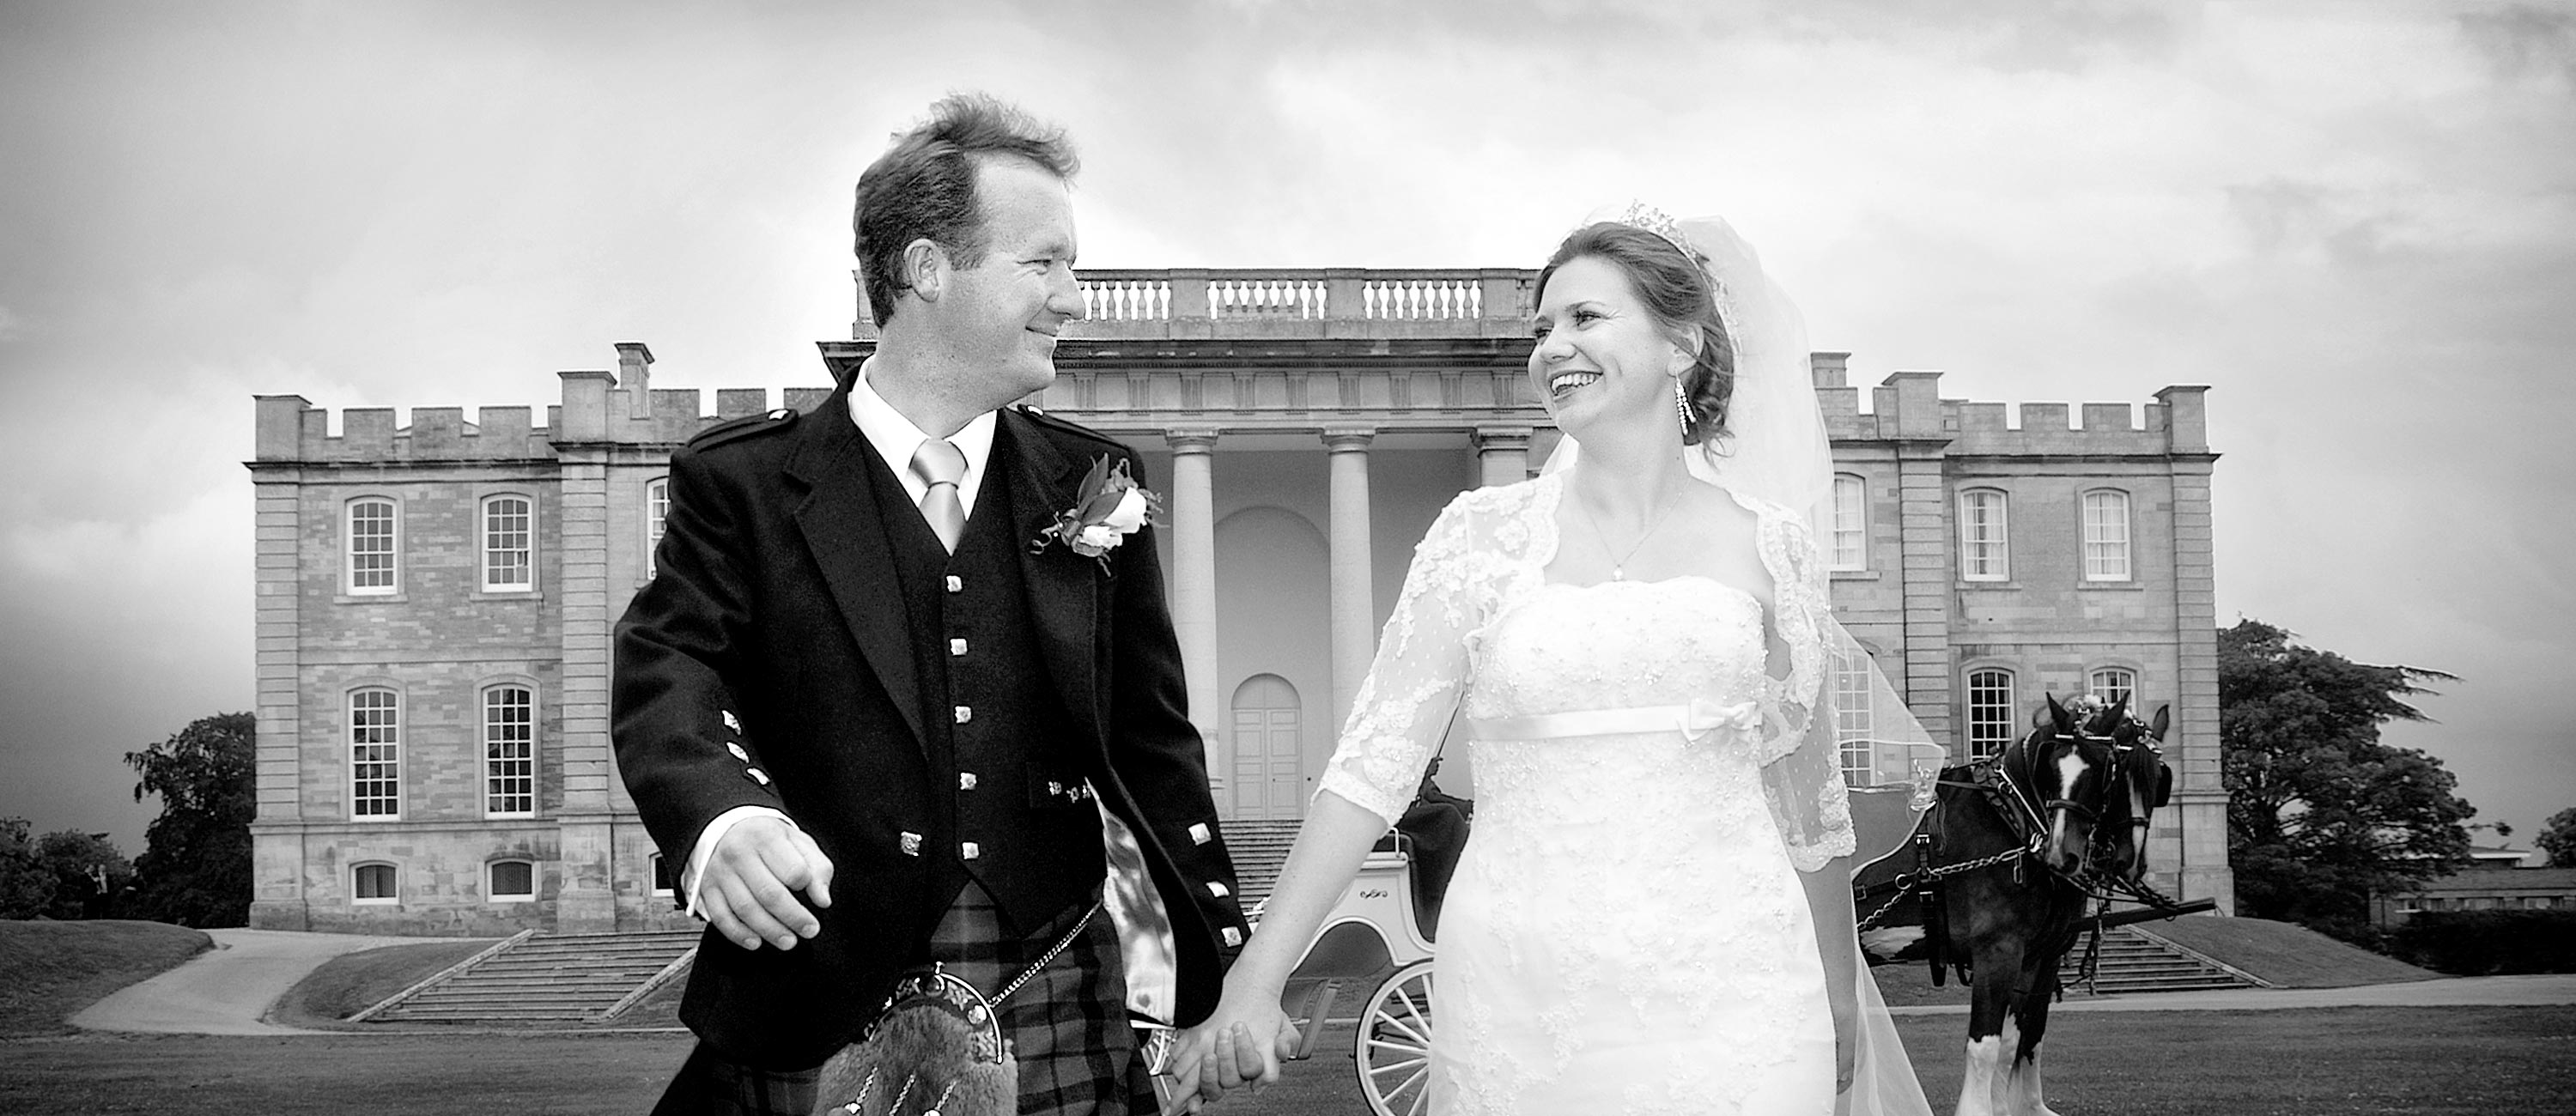 recommended wedding photographer kimbolton